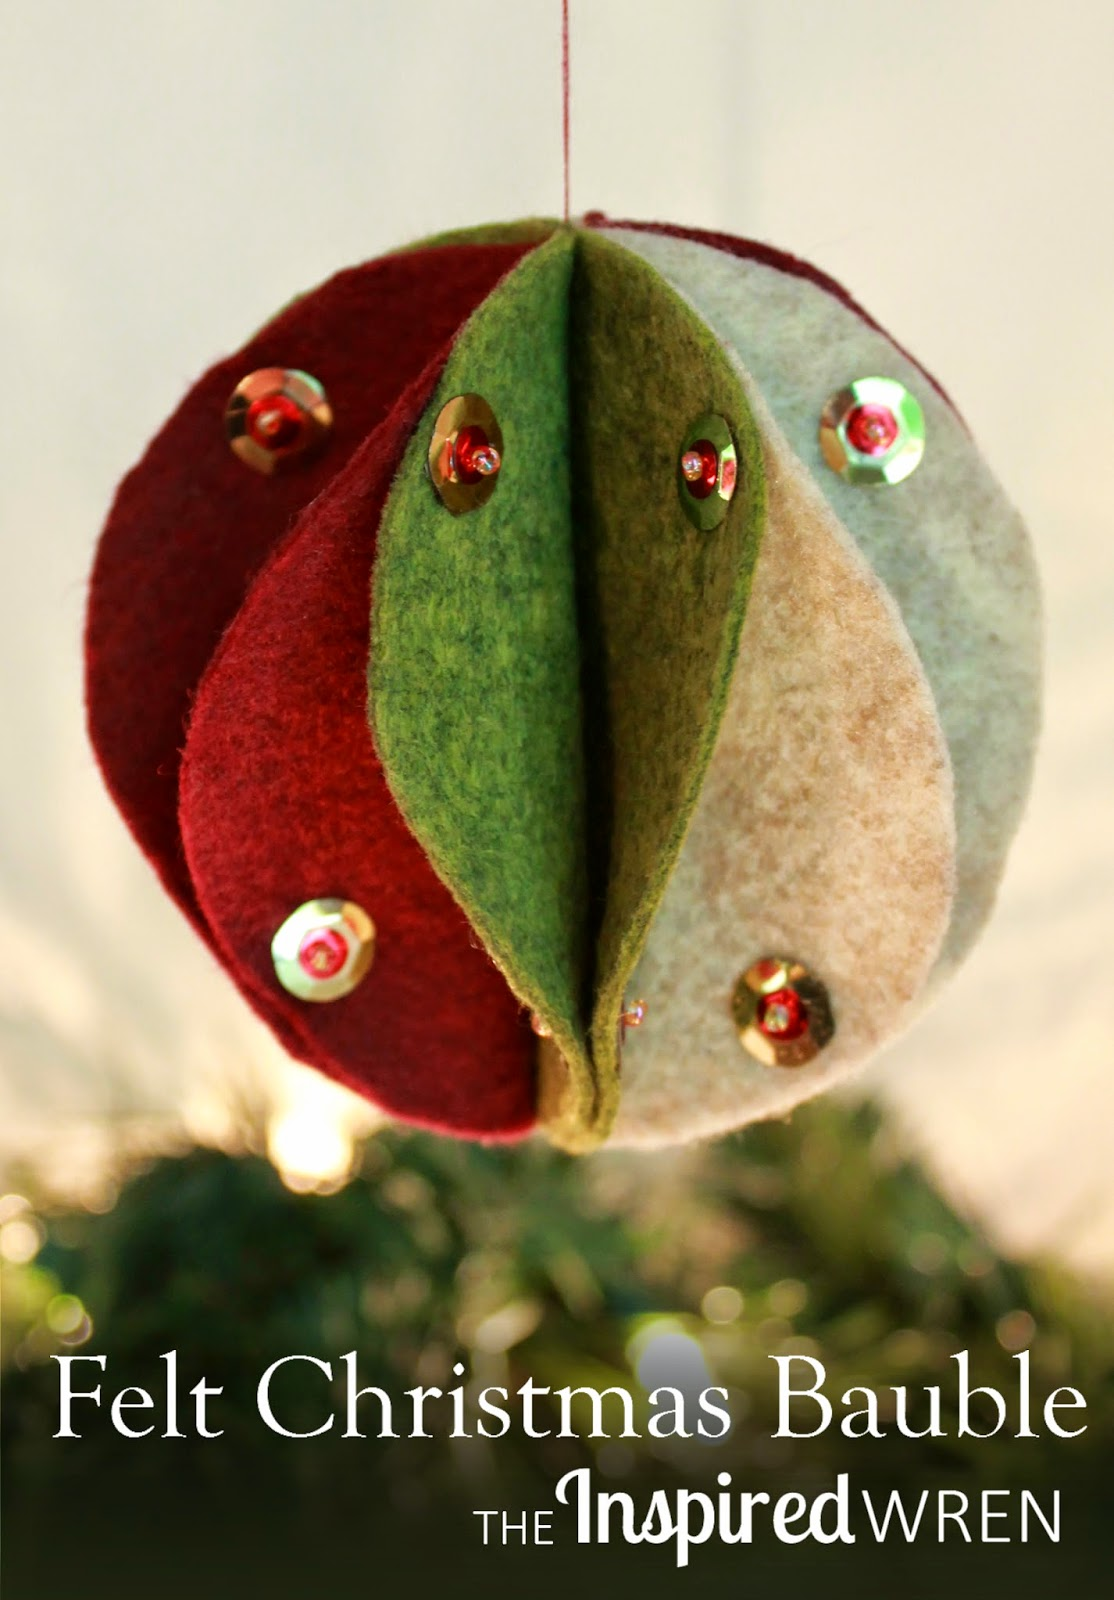 Felt Bauble Tutorial: Step by step directions to create a handmade felt sphere for the holidays, make it with thread or with hot glue.